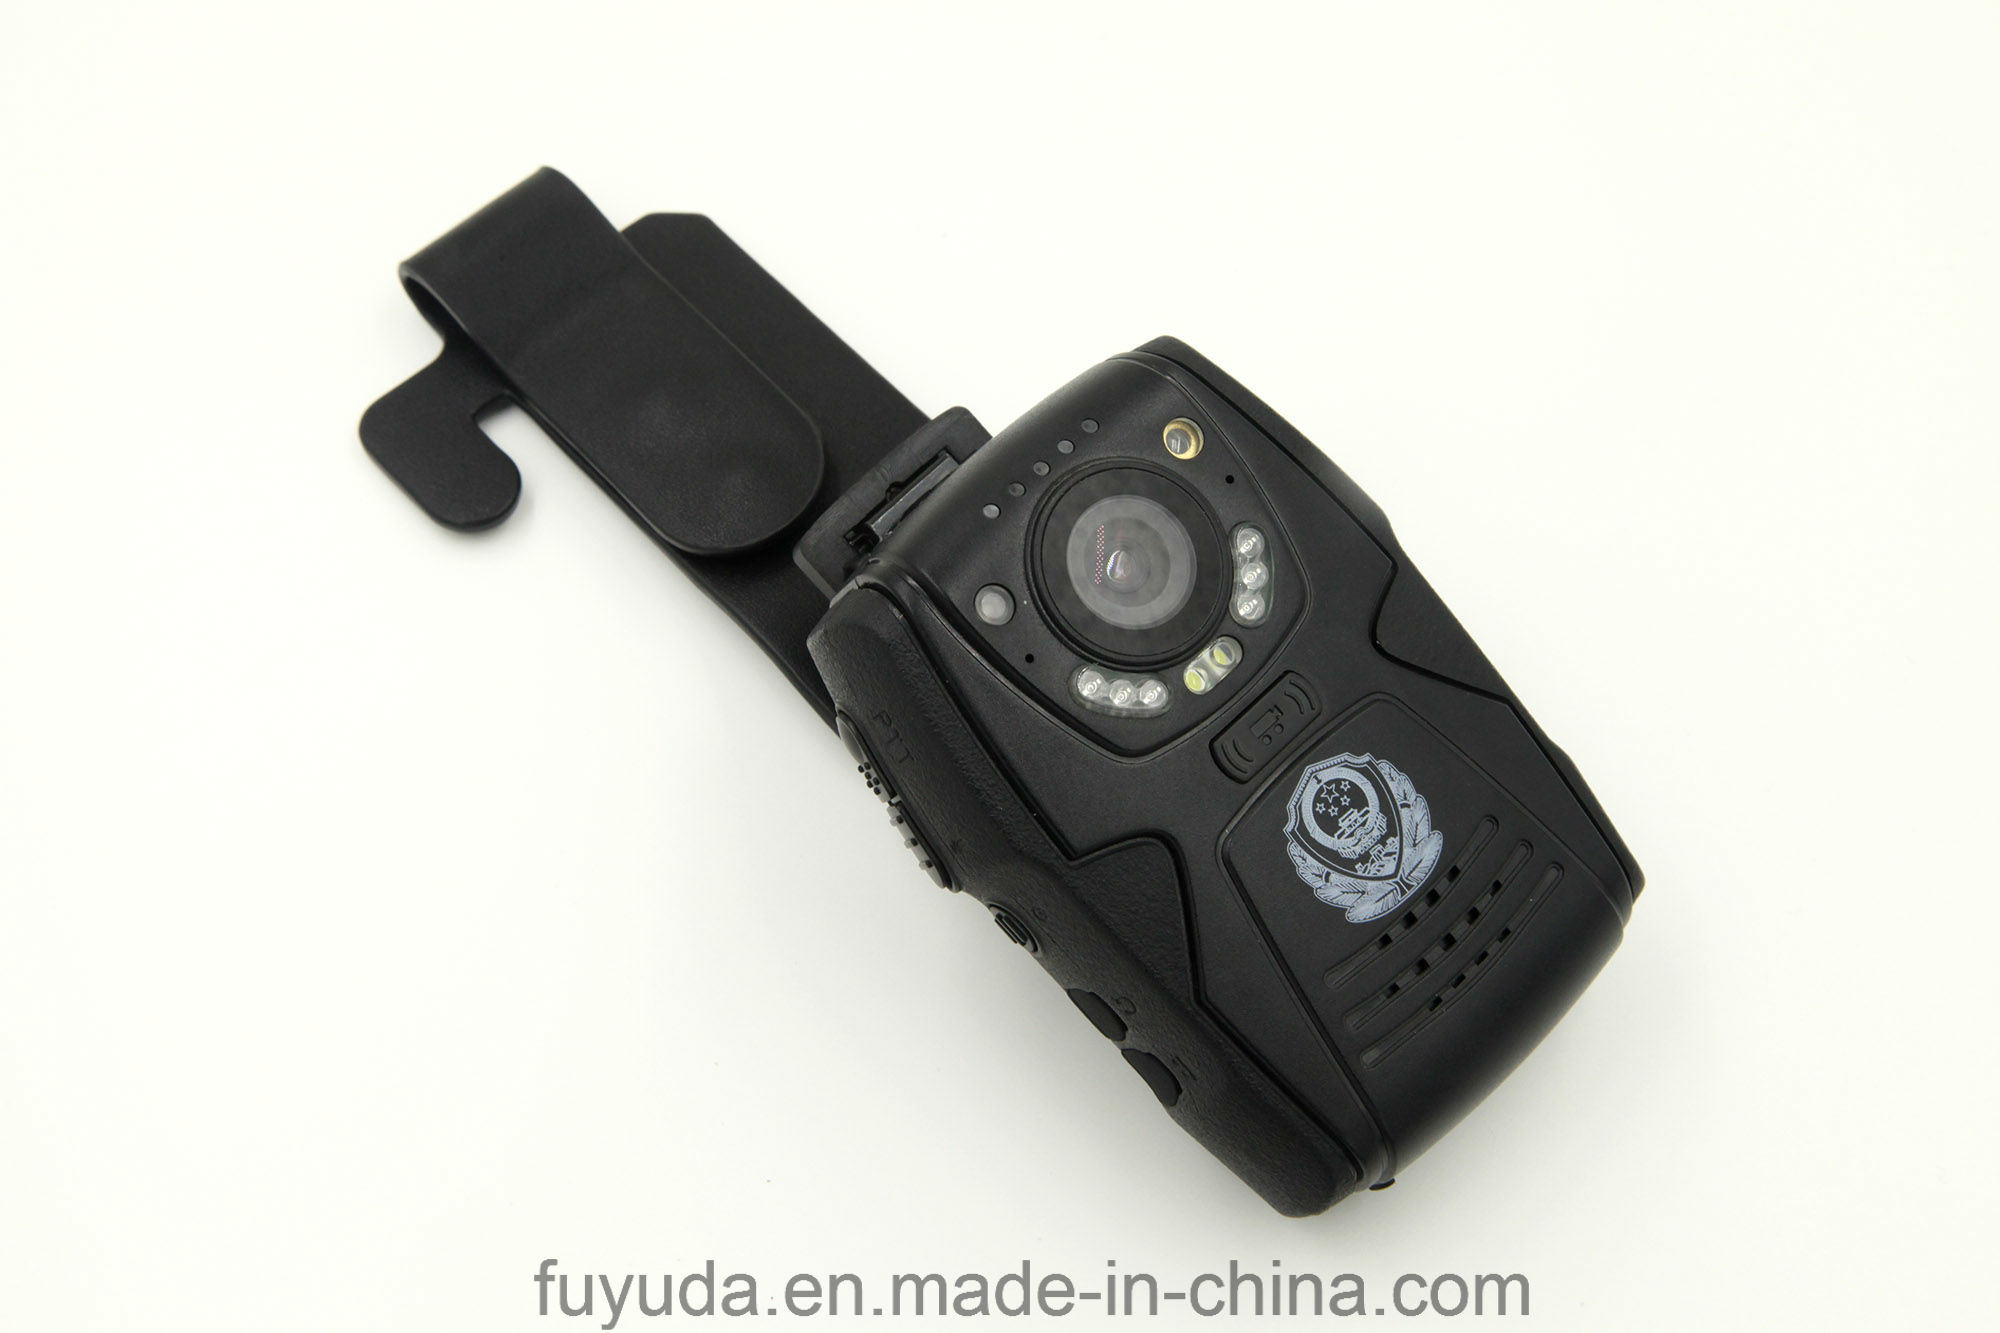 2017 Unique 2.0 Inch 128g Ambarella A7la50 Police Body Worn Camera